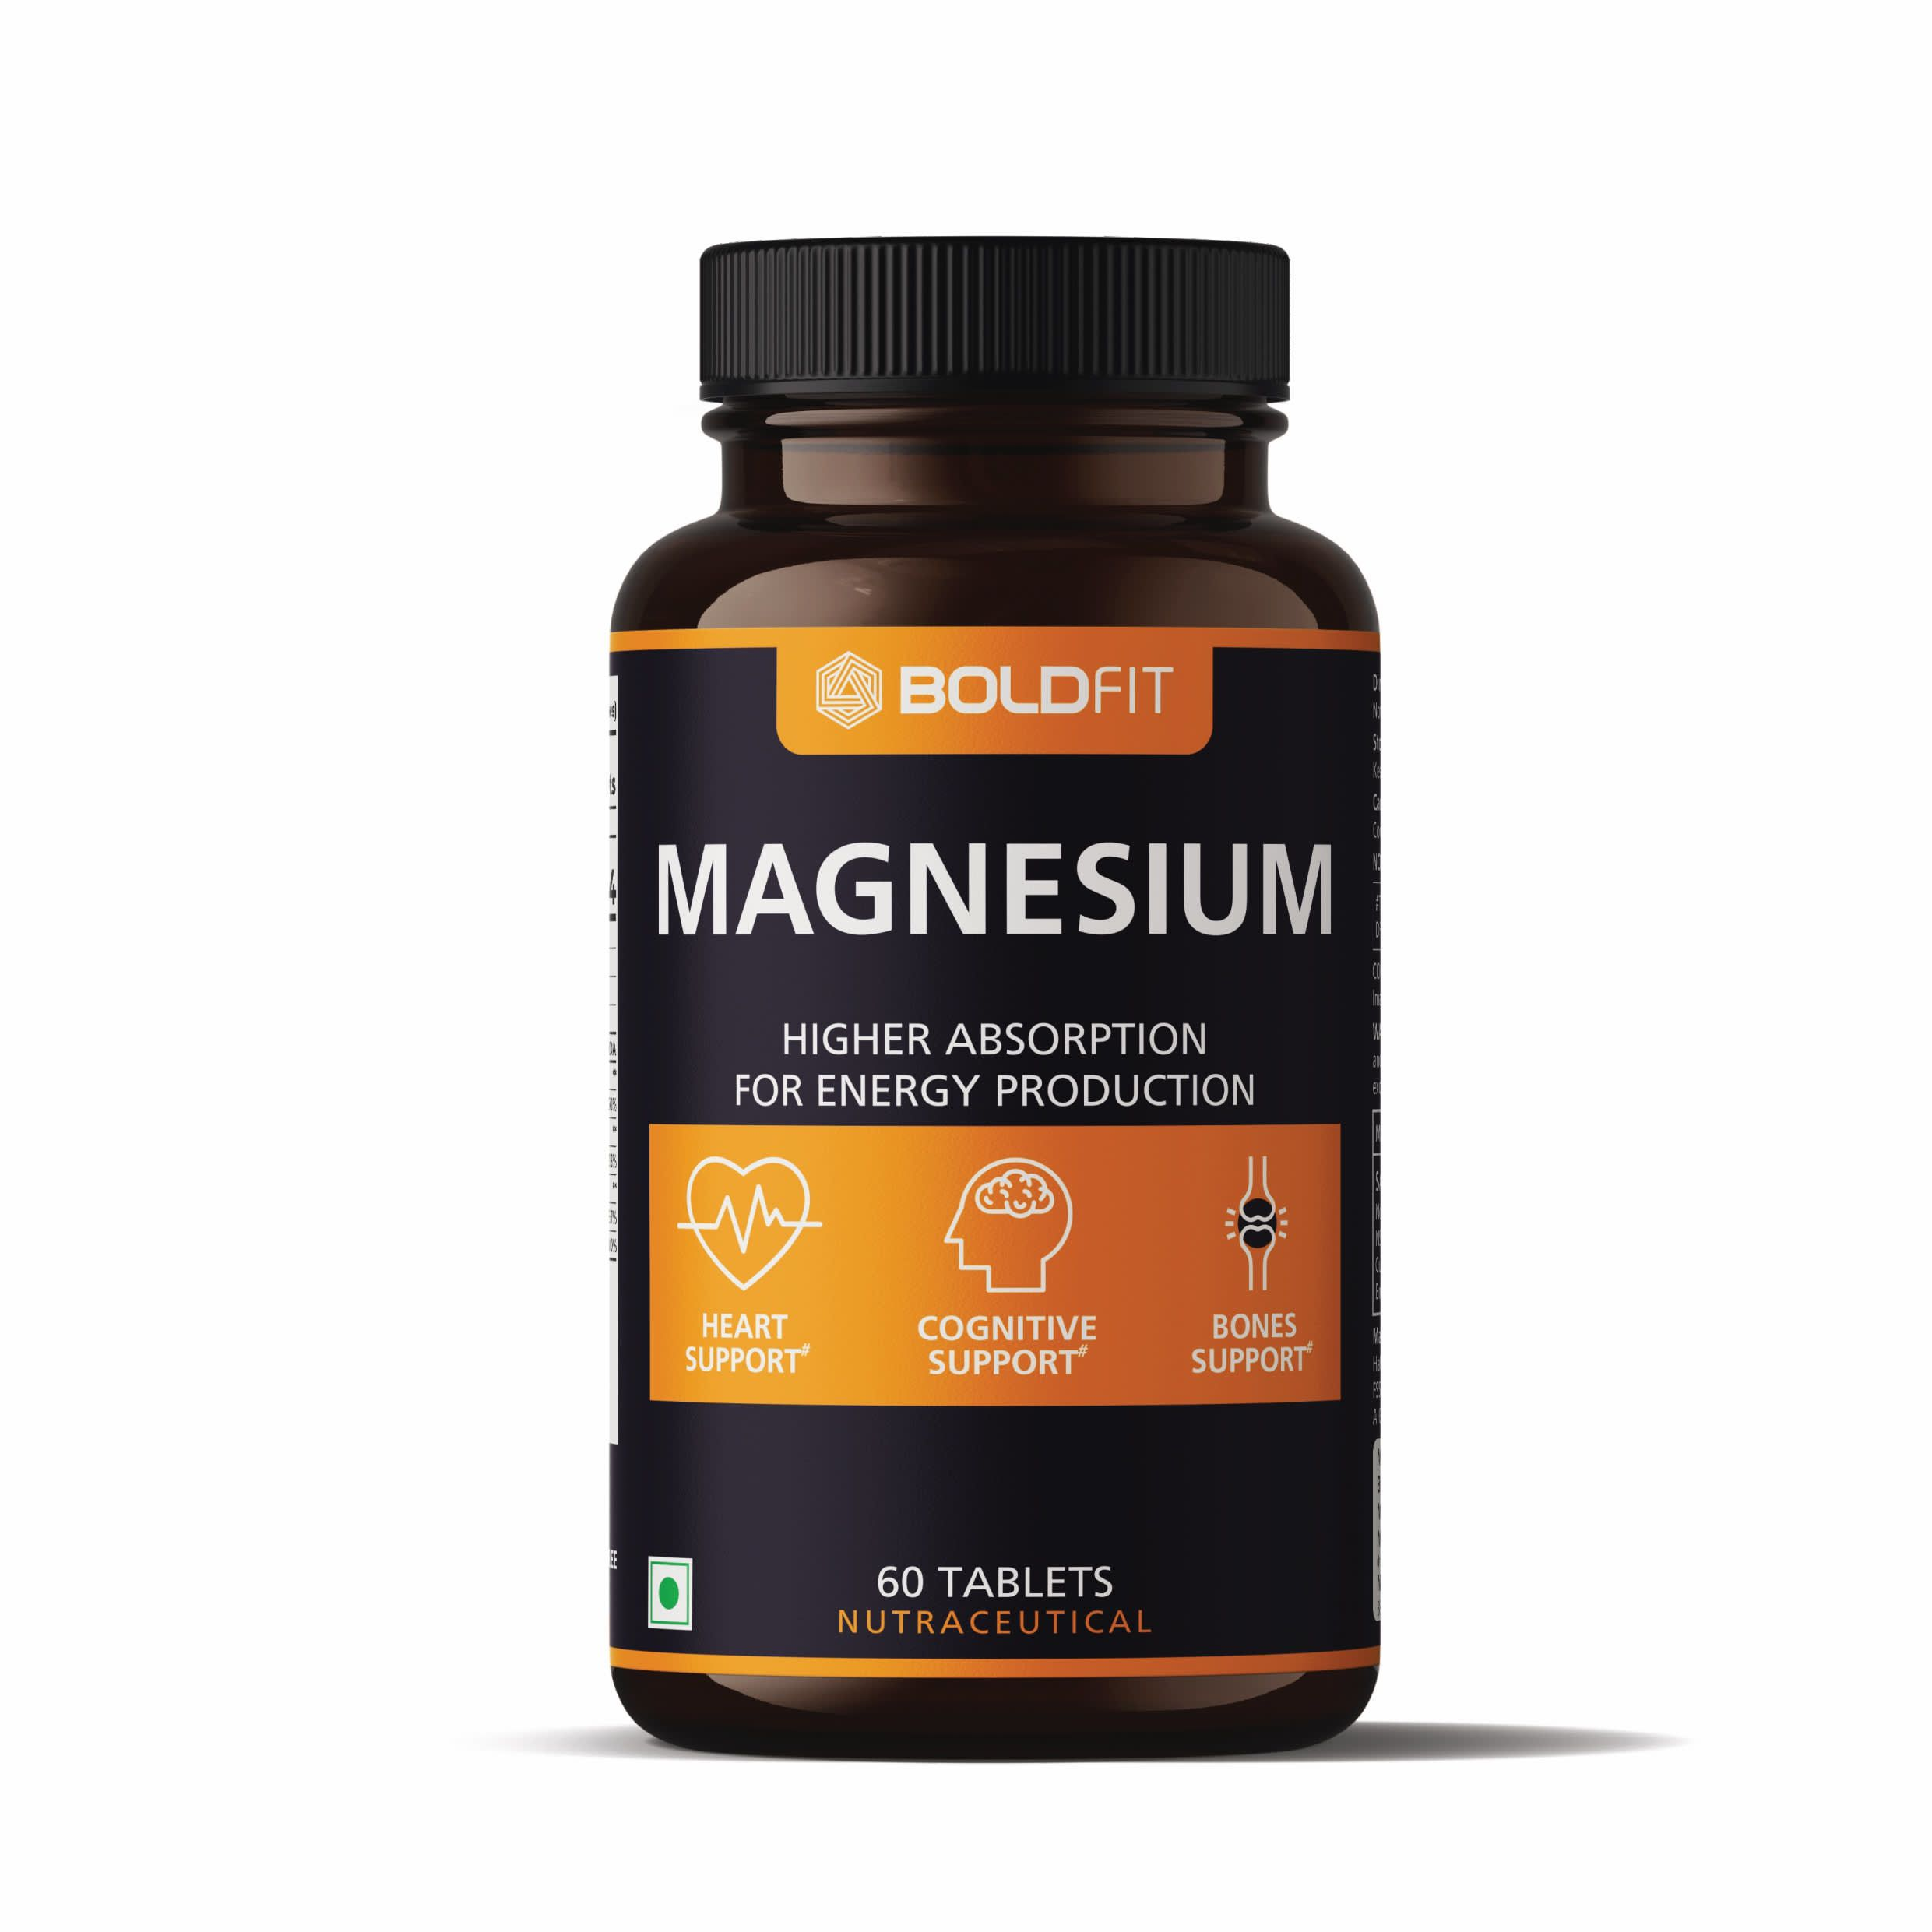 Boldfit Magnesium Complex 824mg Supplement with Magnesium Glycinate, Magnesium Citrate, Magnesium Oxide - 60 Veg tablets